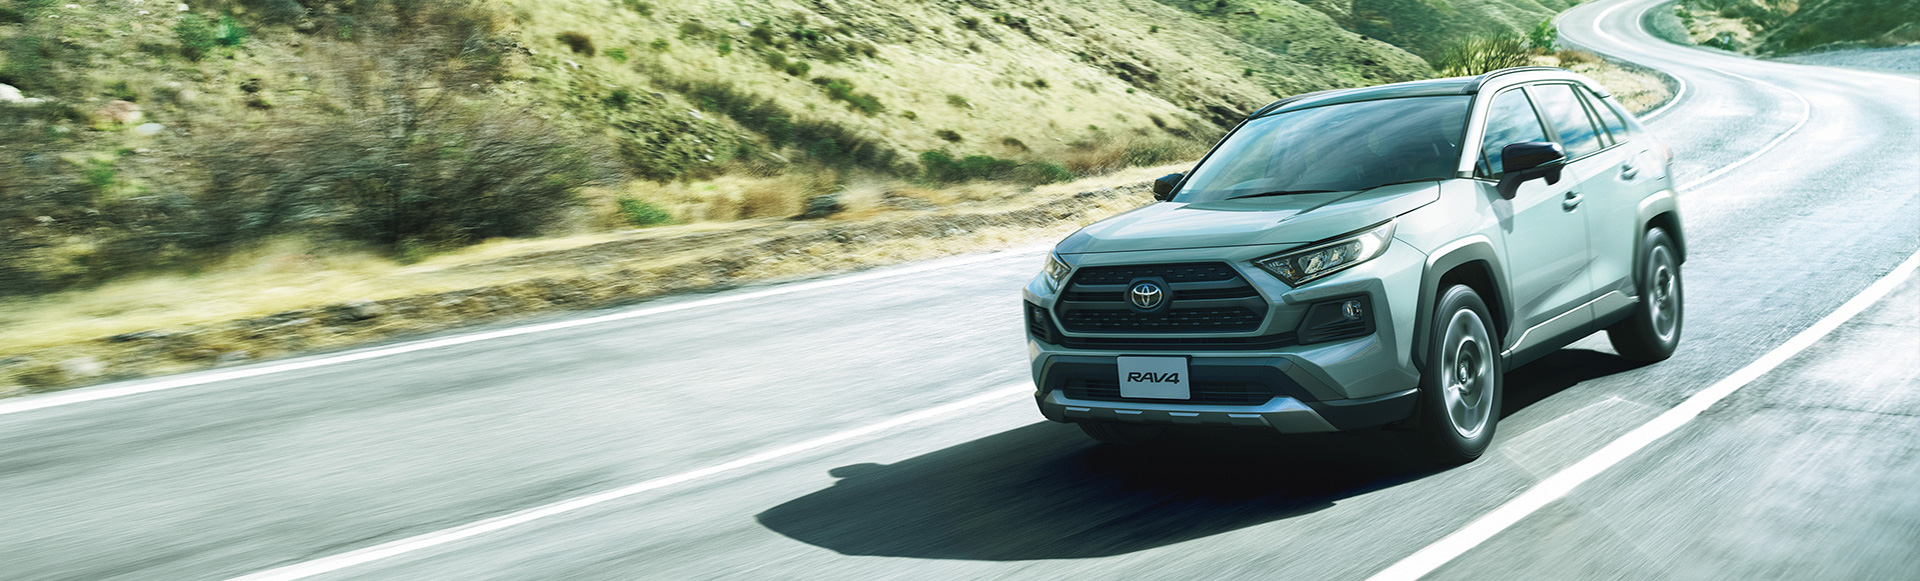 Toyota Rolls Out All-New RAV4